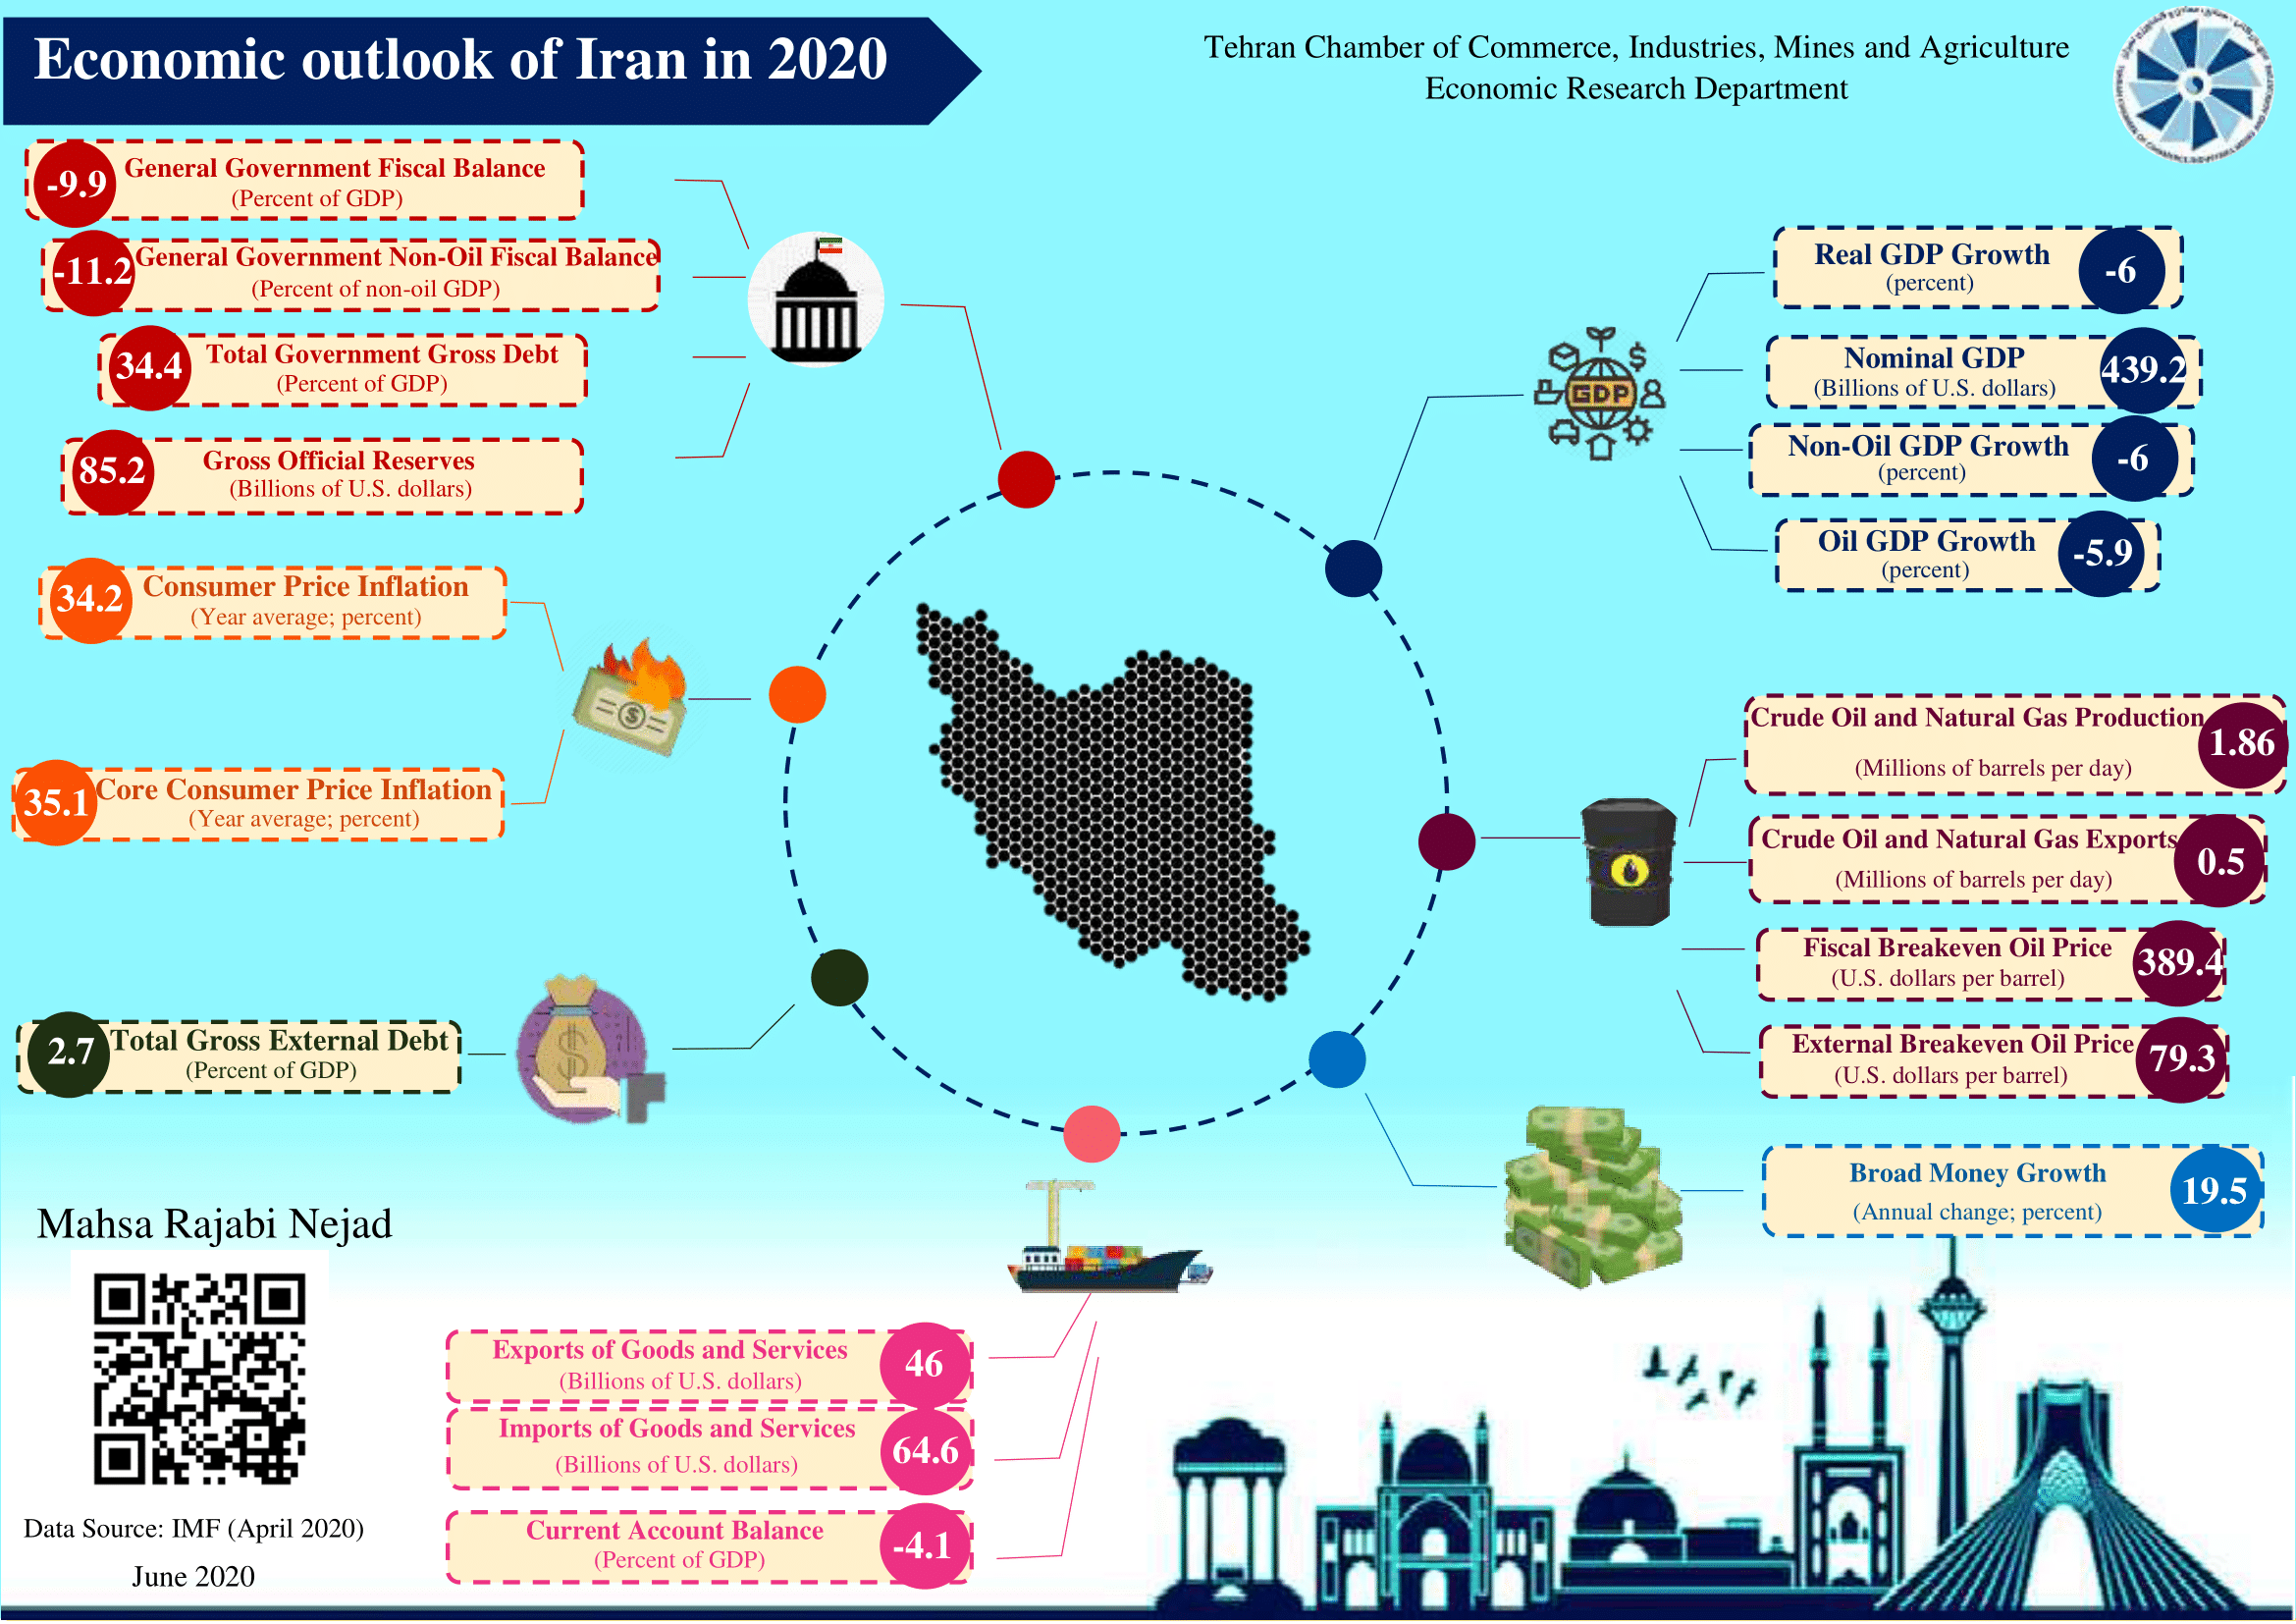 Economic outlook of Iran in 2020